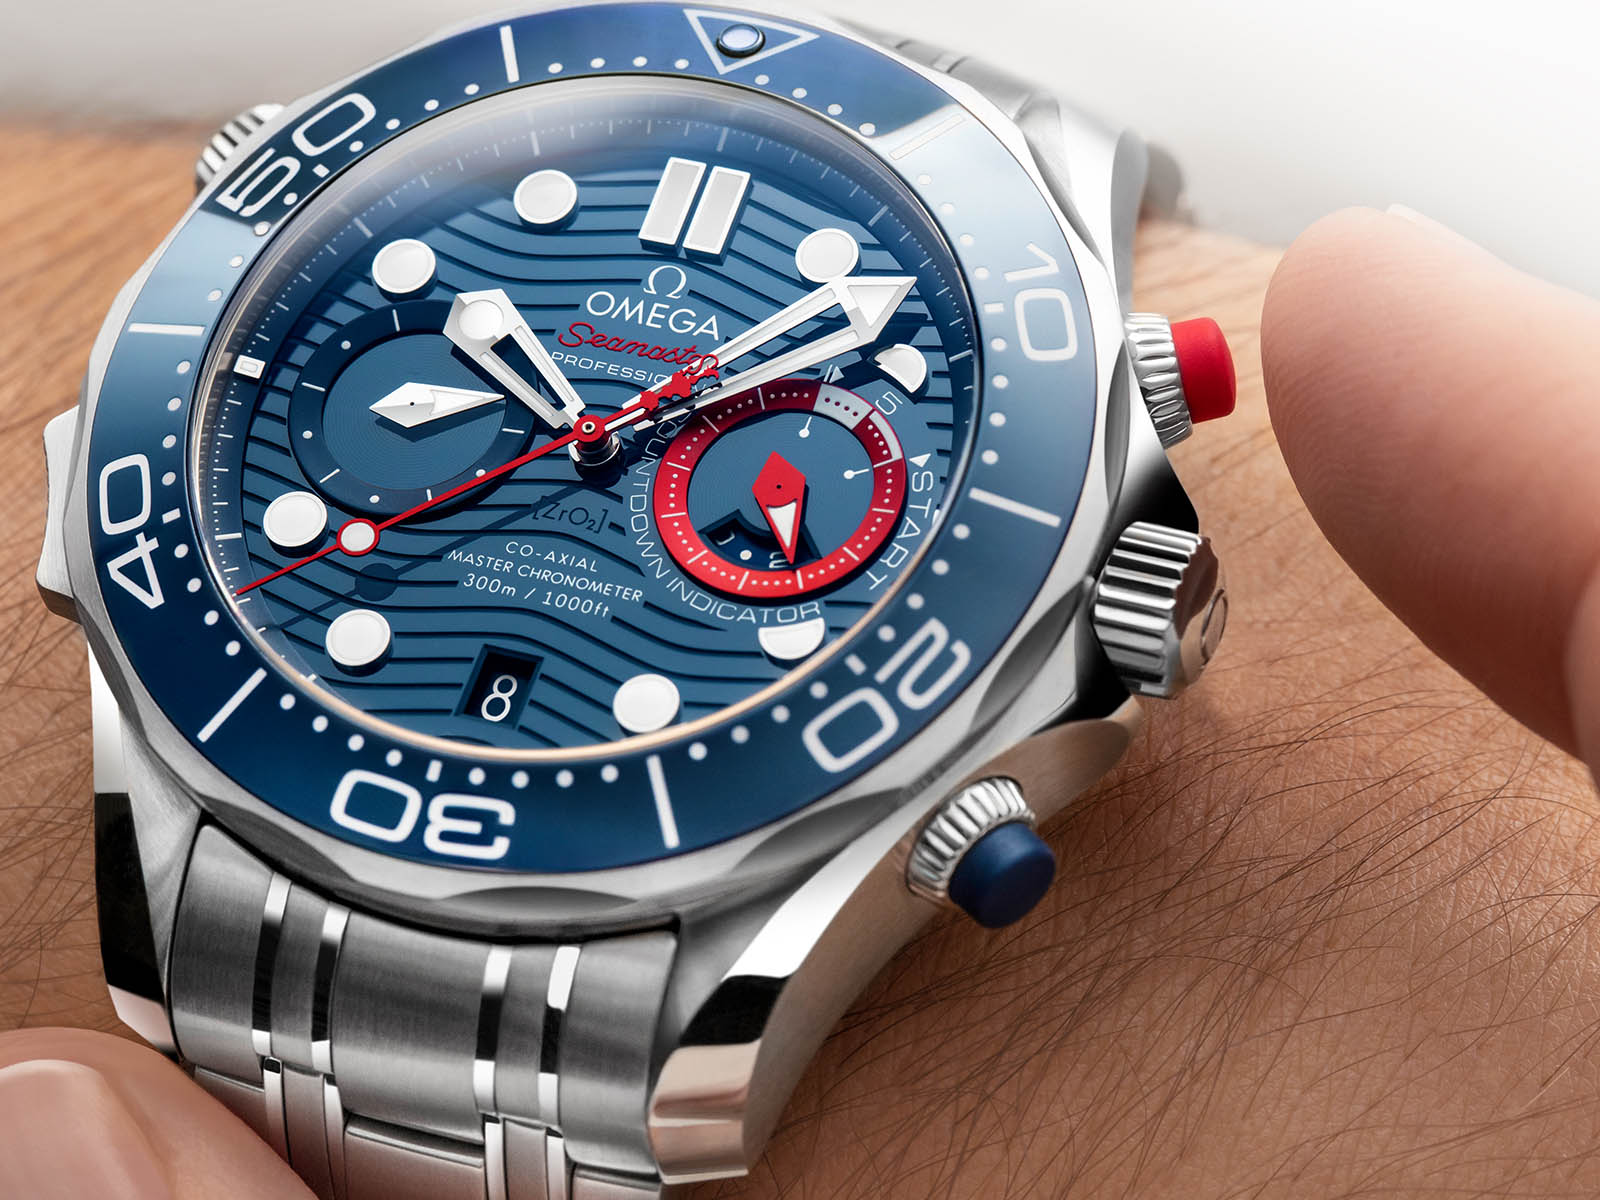 210-30-44-51-03-002-omega-seamaster-diver-300m-america-s-cup-chronograph-3.jpg